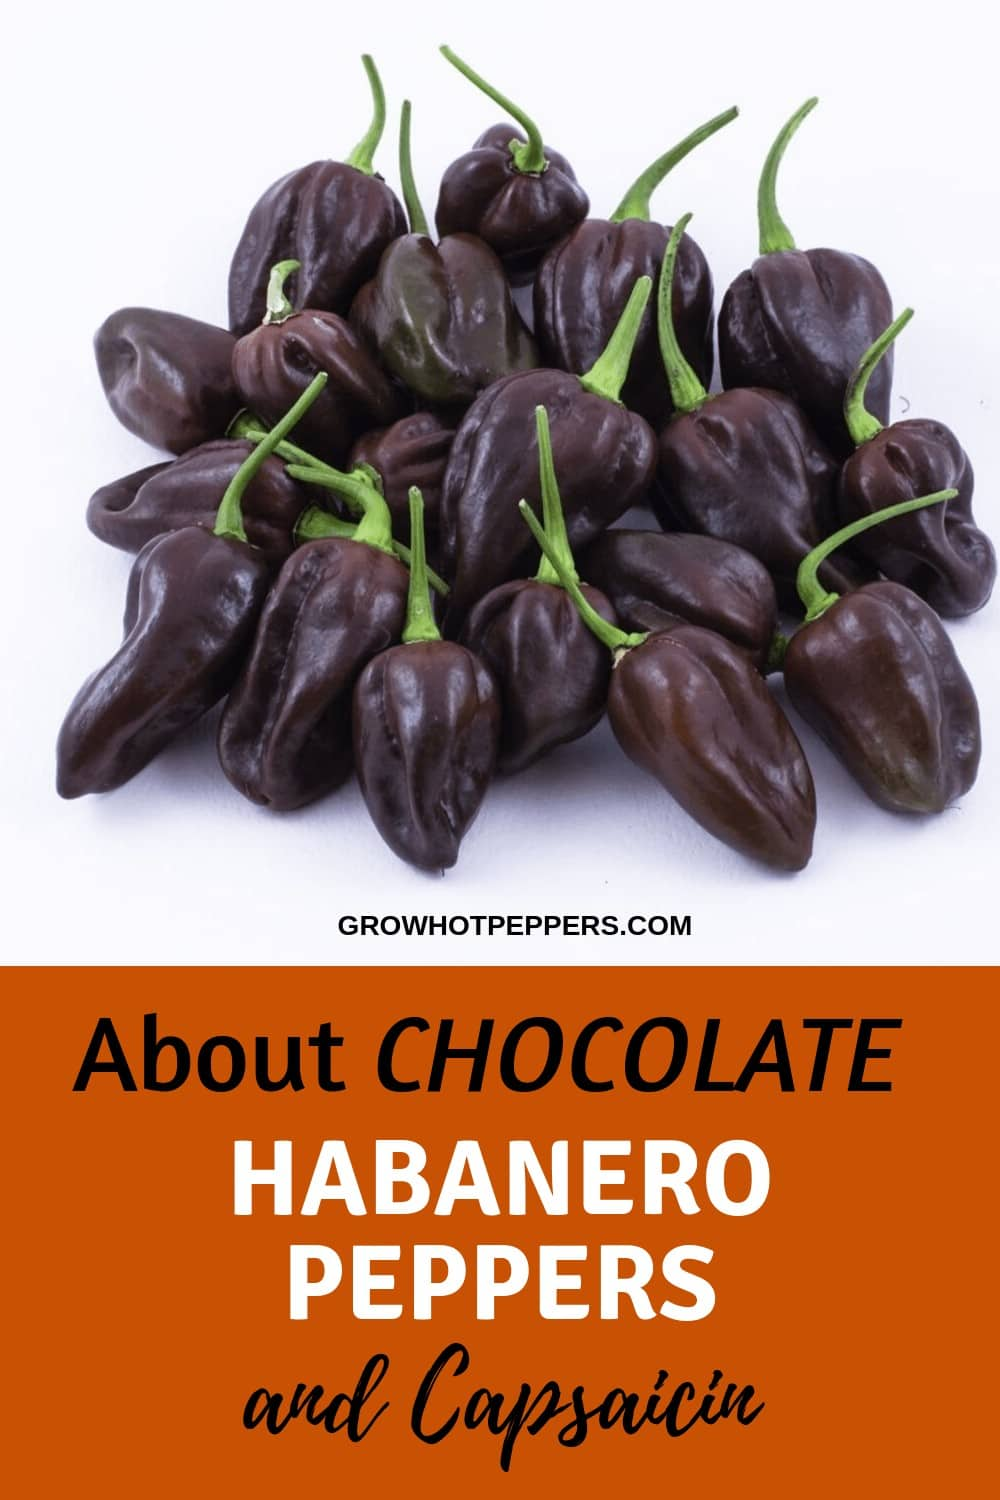 Chocolate Habanero: About This Awesome Pepper (+ Growing Tips)